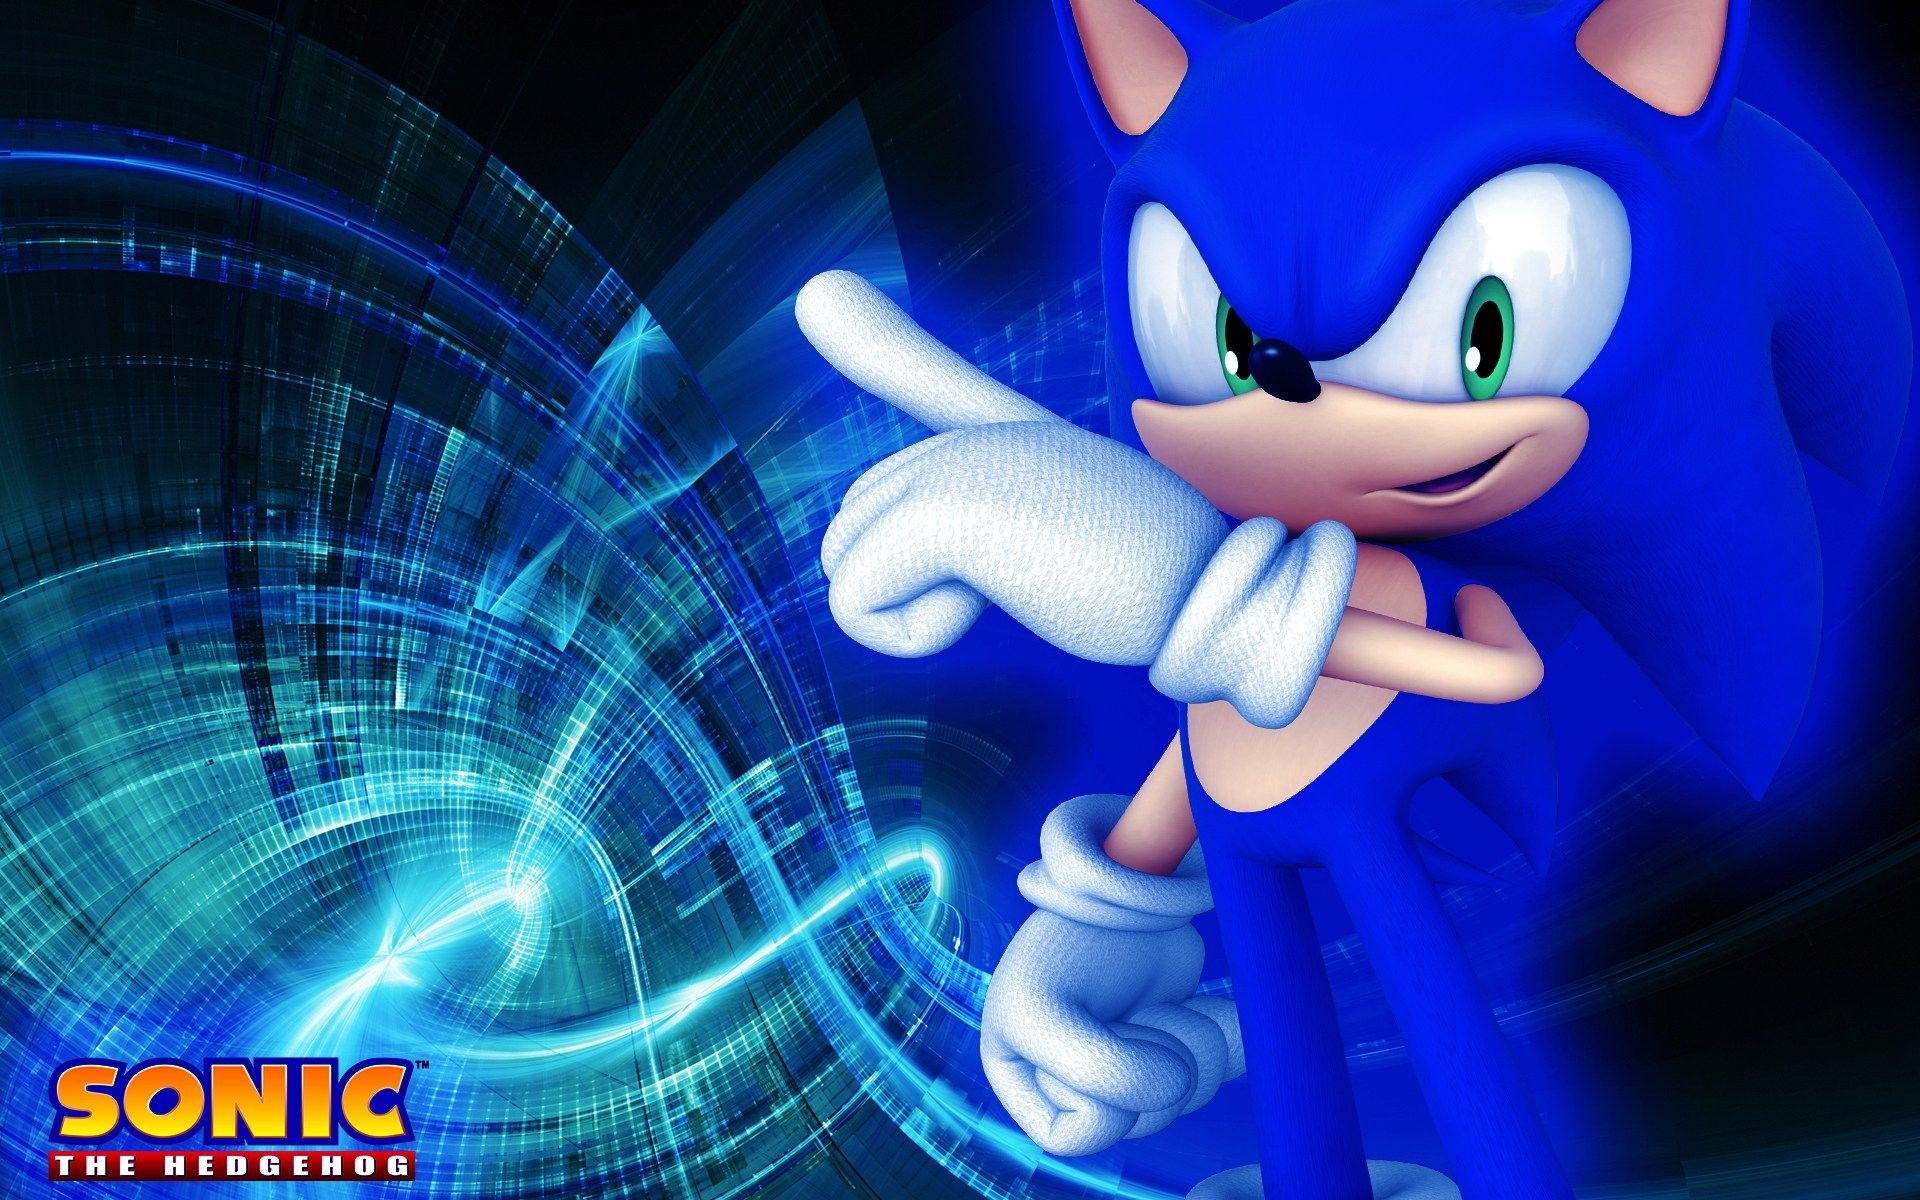 Sonic Live Wallpapers Sonic The Hedgehog 4 Episode Hd With Regard